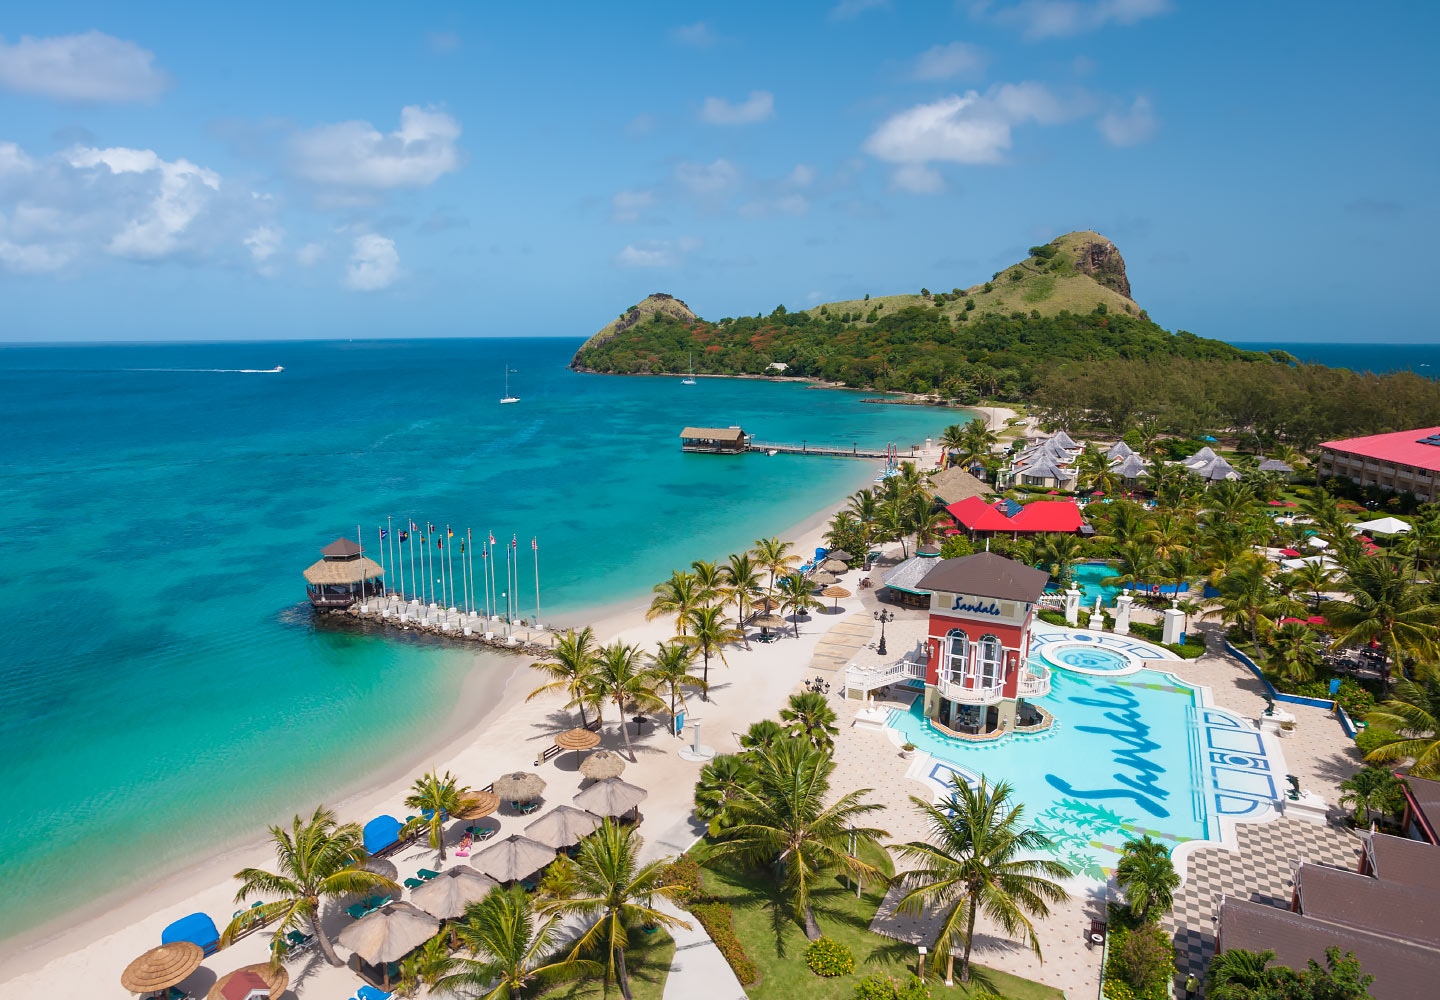 sandals grande st lucian is always one of the best all inclusive resorts for couples